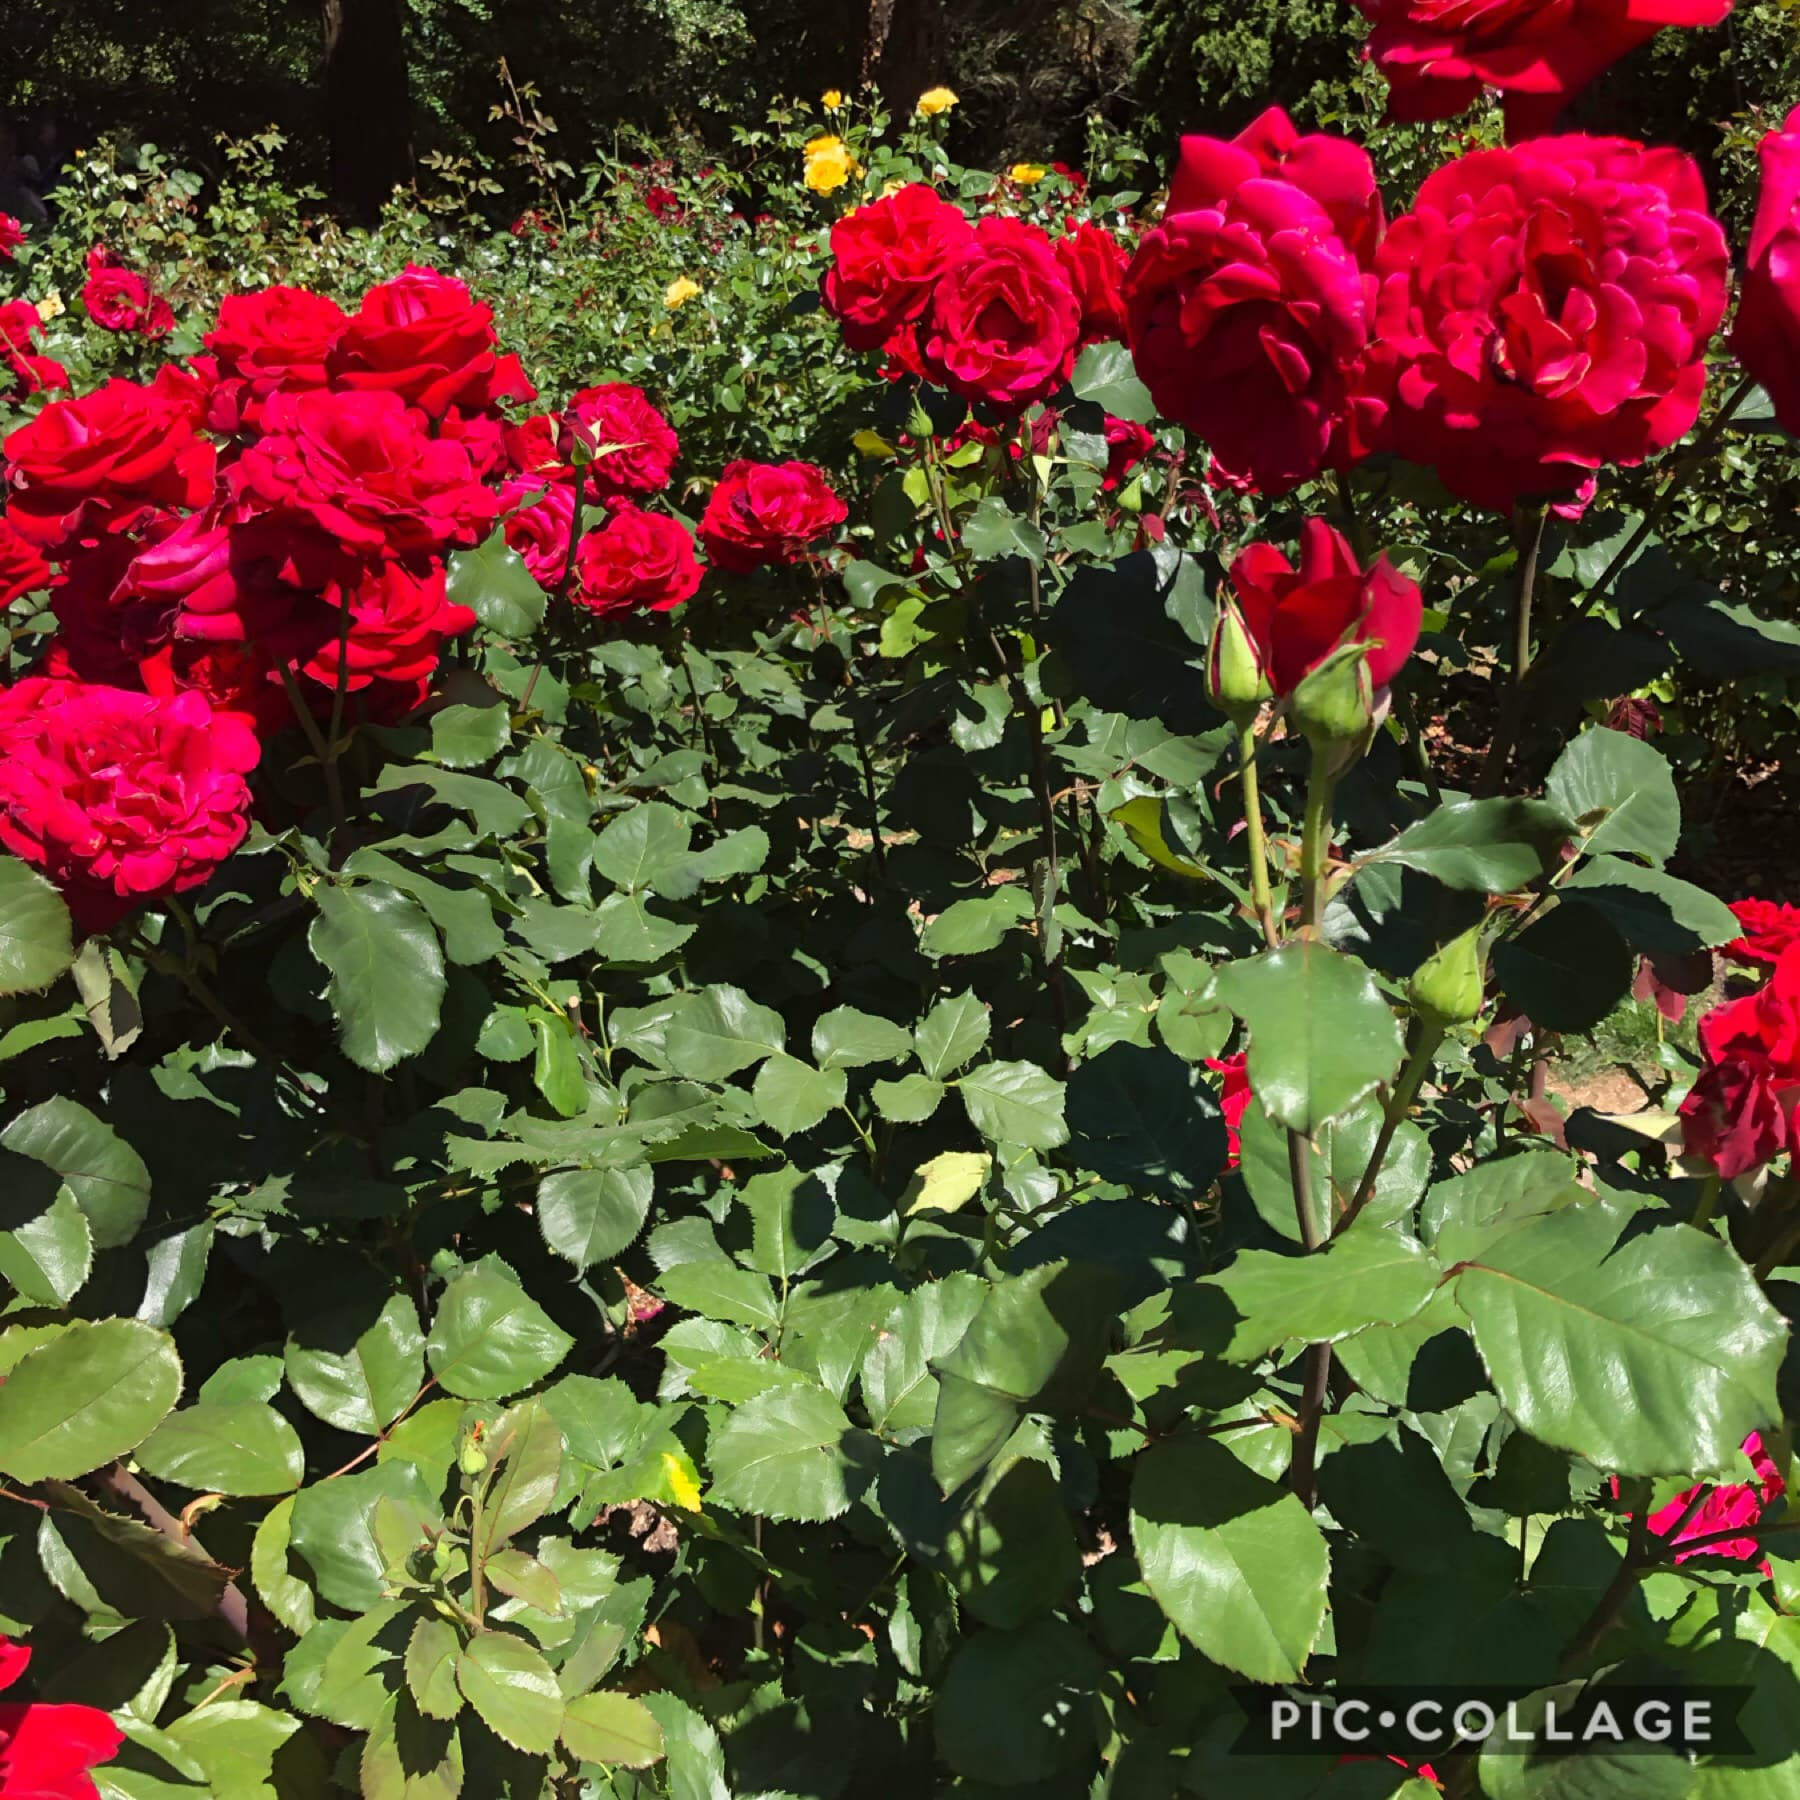 🌈🌈hey ppl I'm back lol, I havnt been on here for months and I feel vv sad to not go on this app bc I feel emotionally attached to it bc I've had it for so long. I went on a road trip and here's a pic of roses I took, anyways I'm more active on insta so if